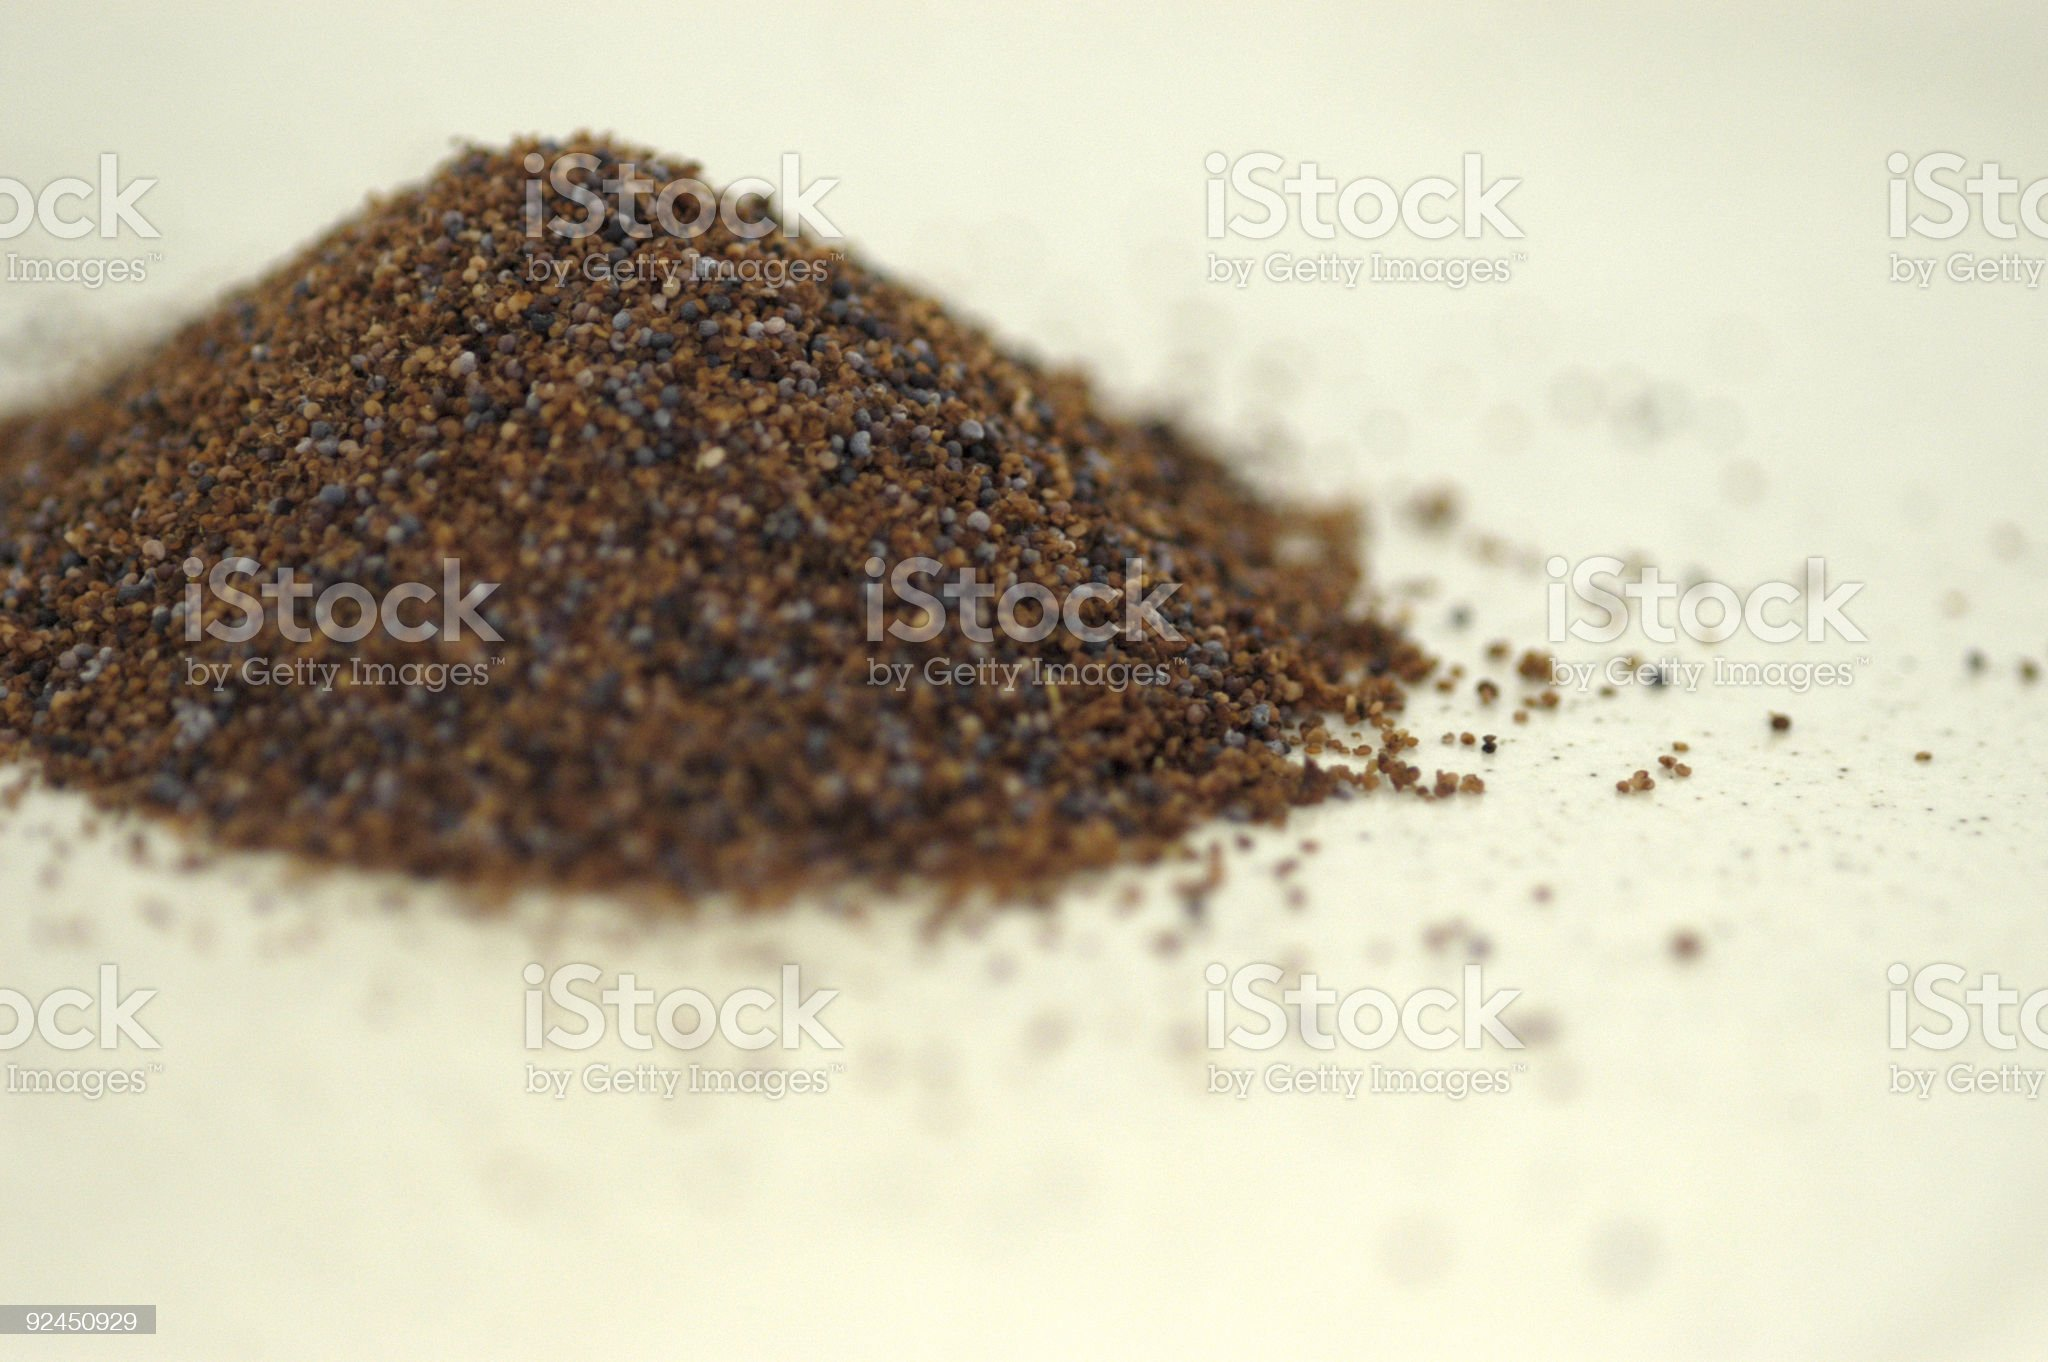 Pile of poppy seeds royalty-free stock photo